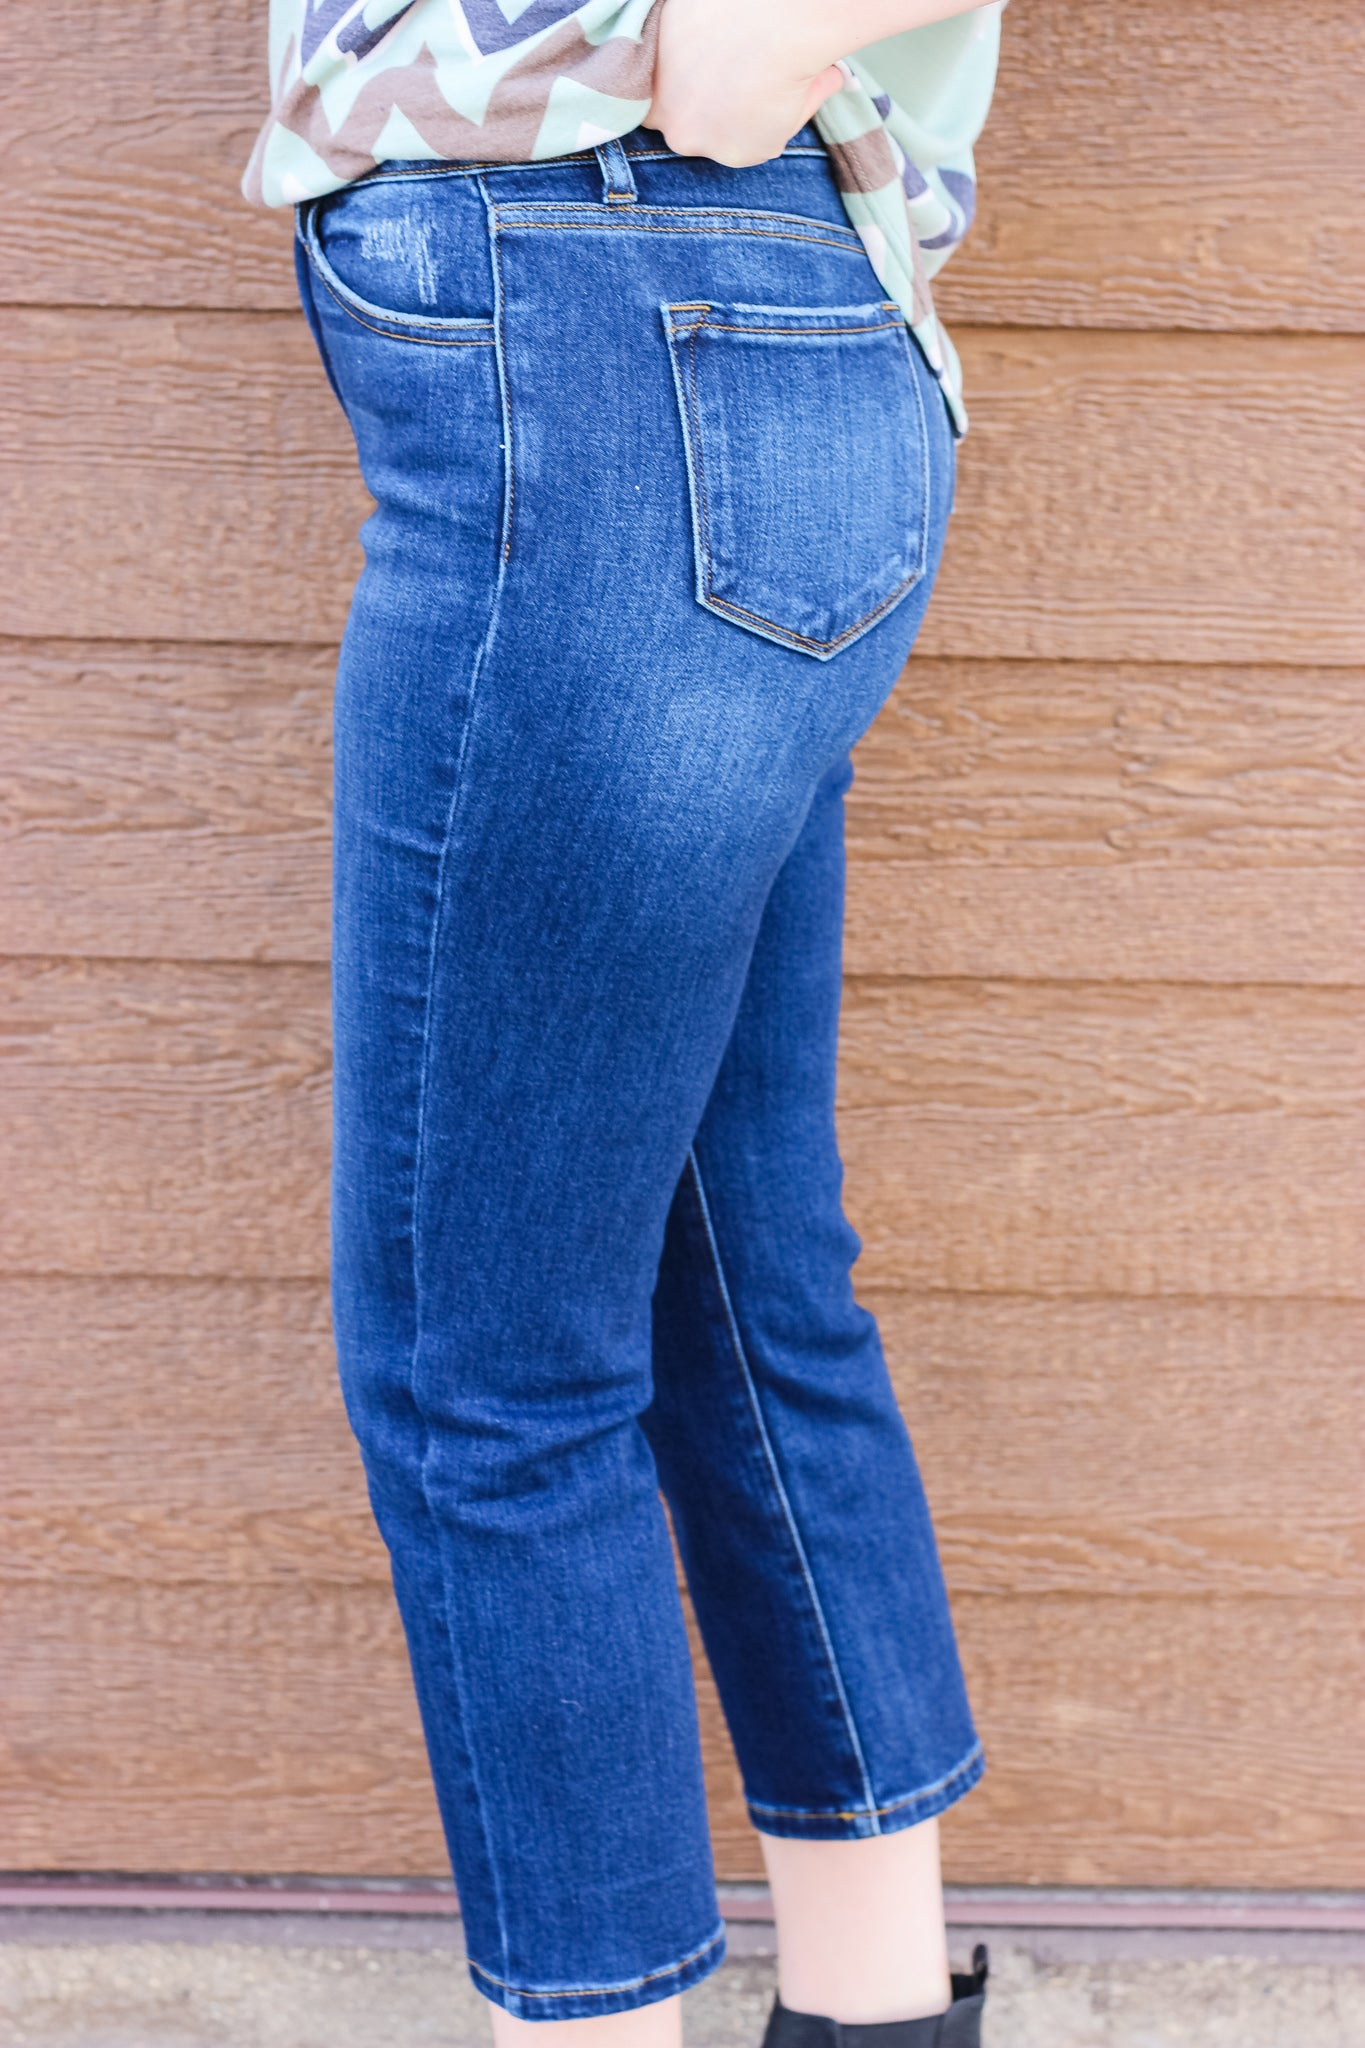 KanCan High Rise Skinny Jeans 2 - JQ Clothing Co. - Oakes ND